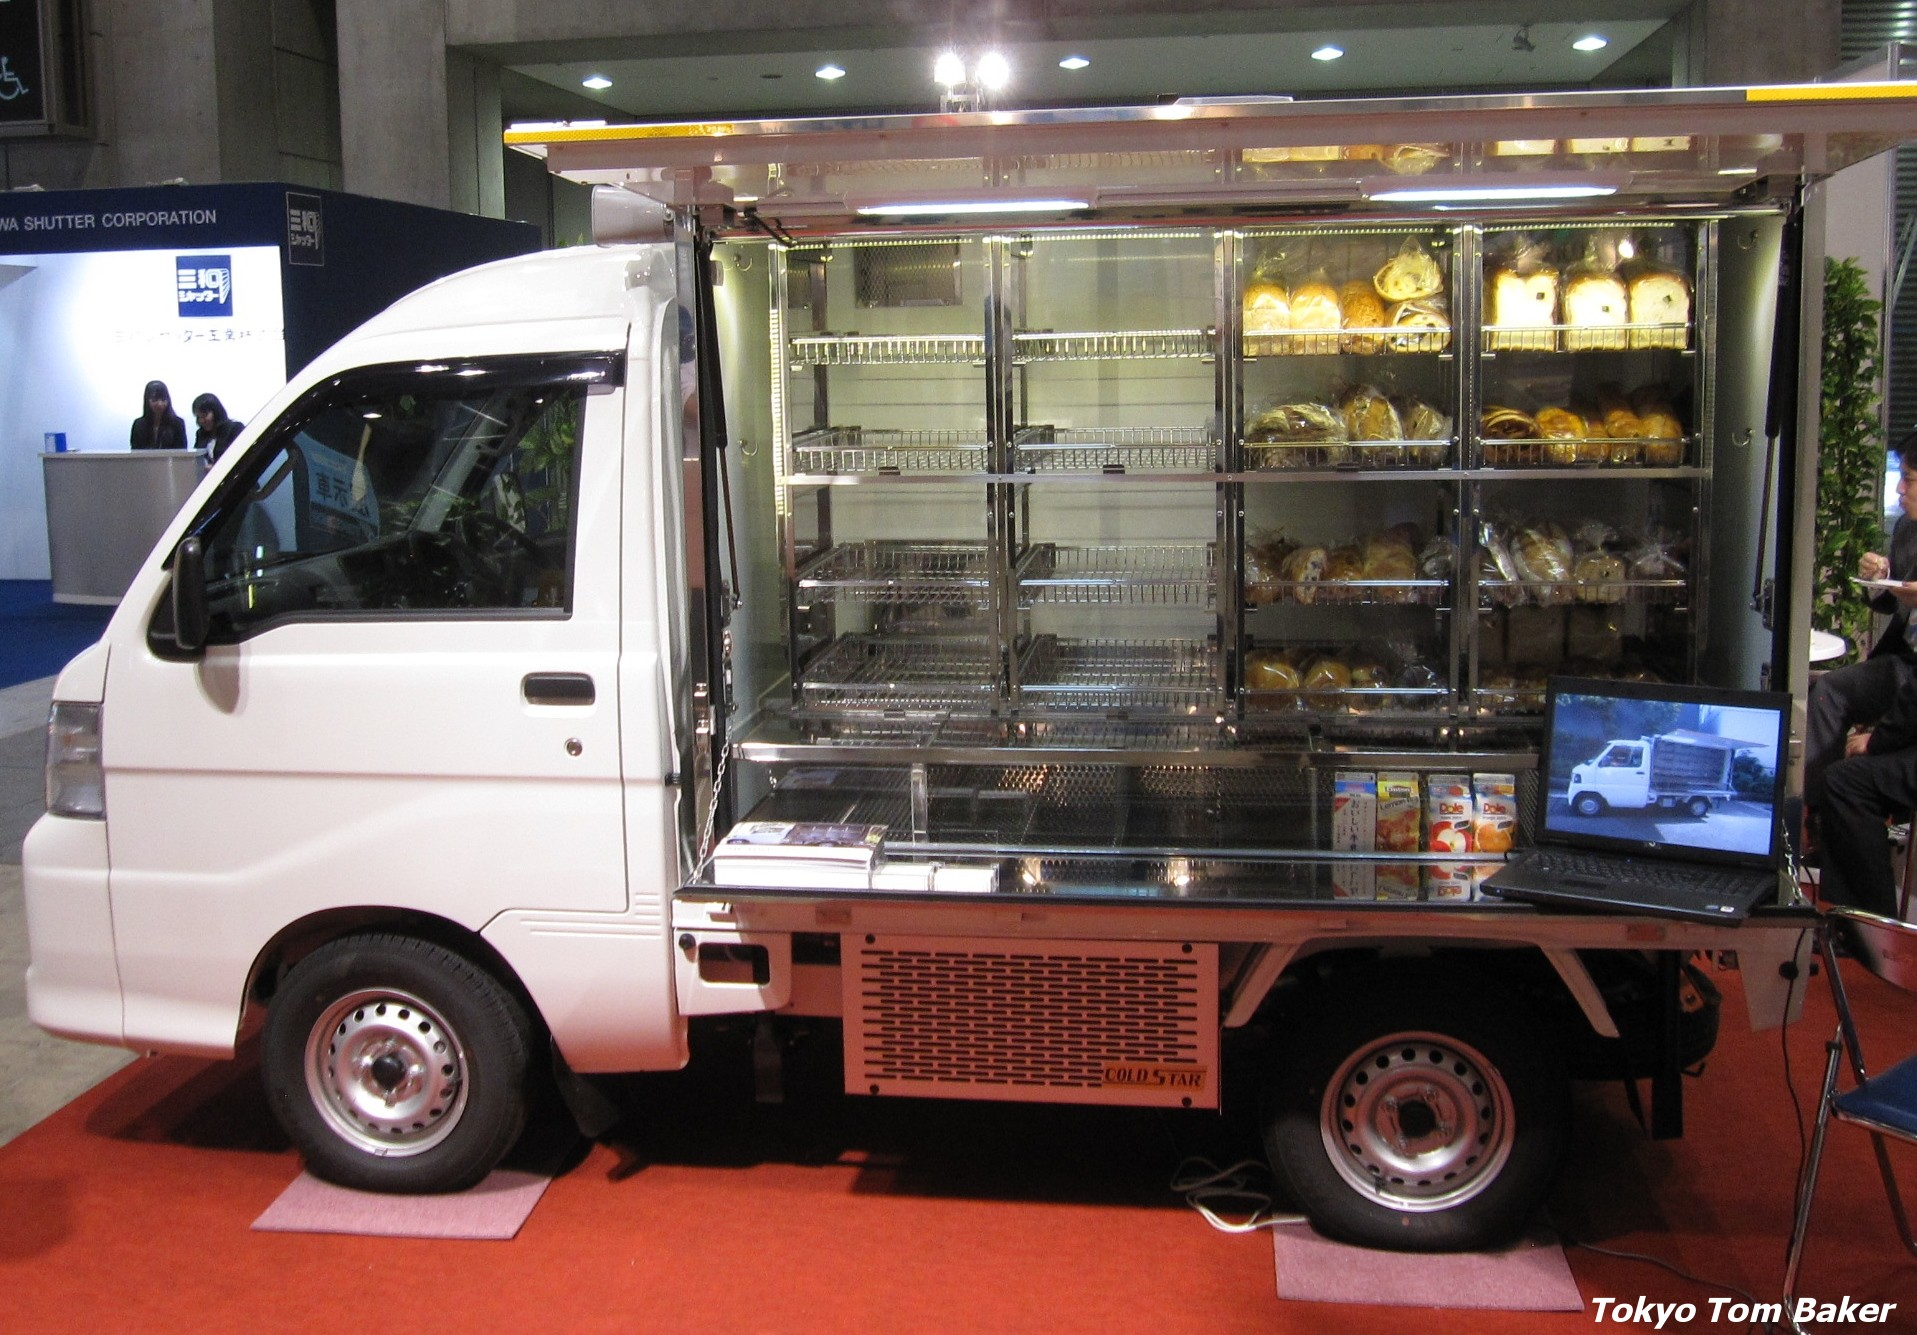 Lunch Truck For Sale >> roach coach | Tokyo Tom Baker: The Blog